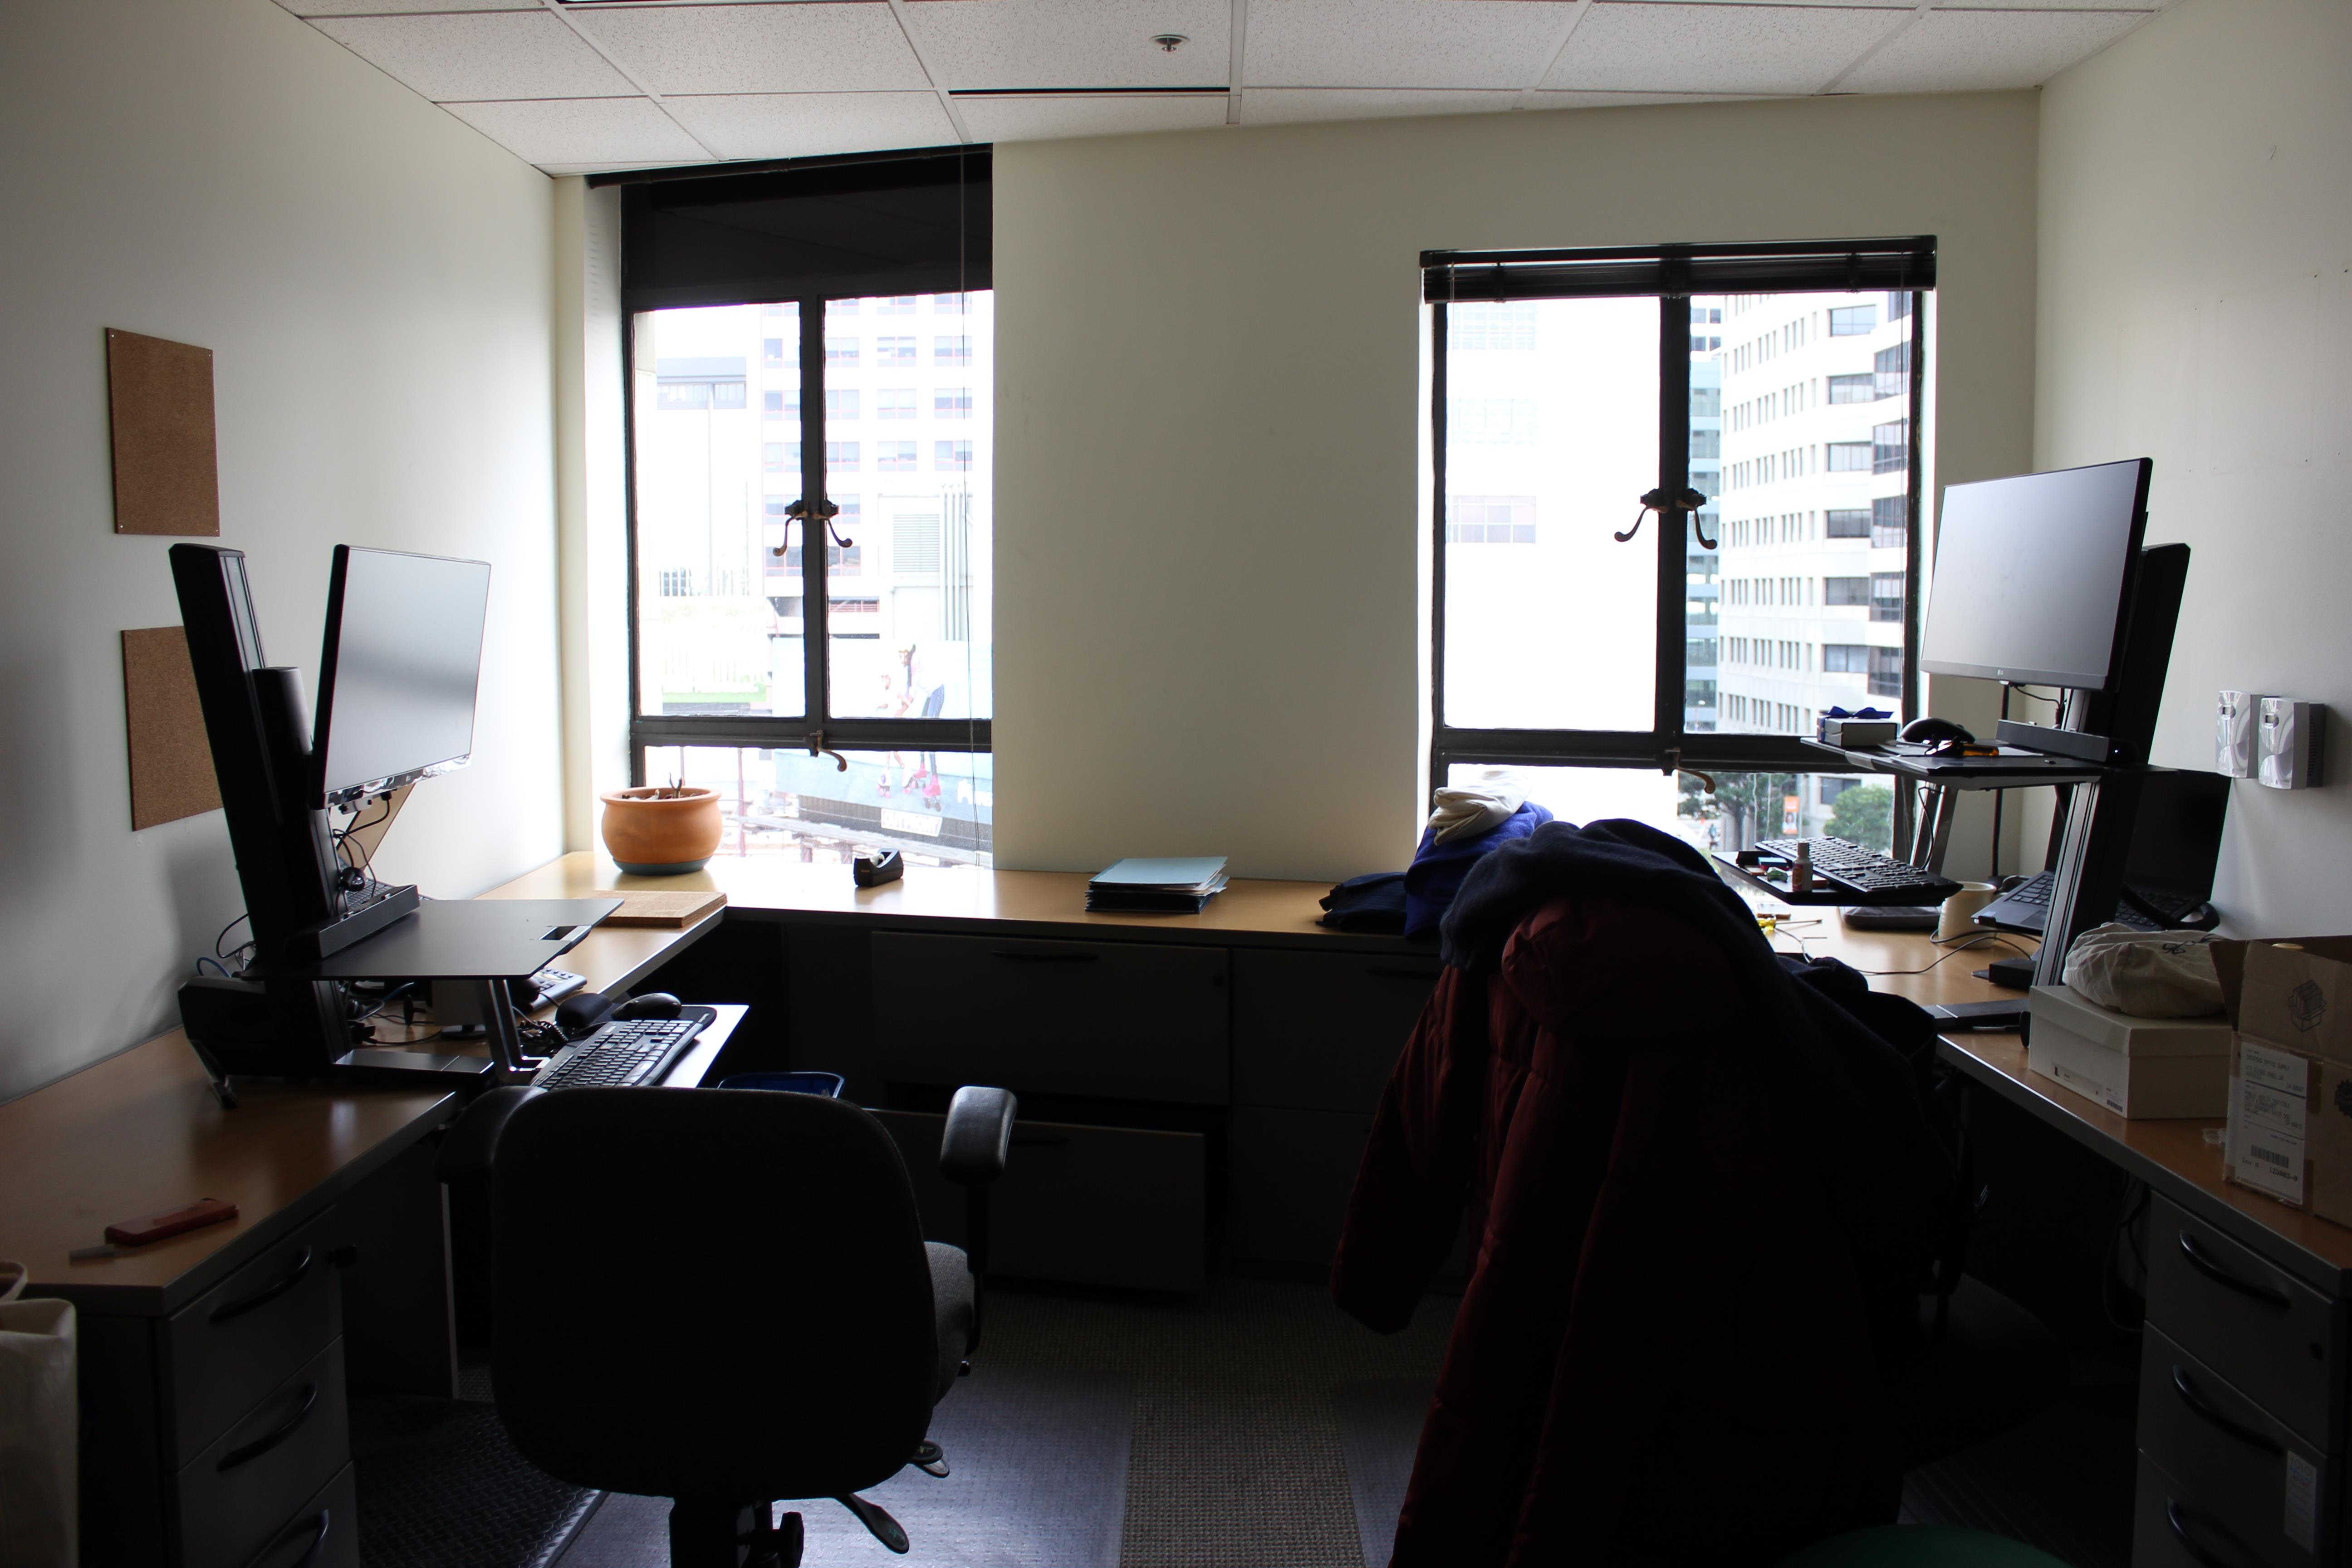 Beatiful office/event space in Oakland - Office Spaces/cubicles in shared suite